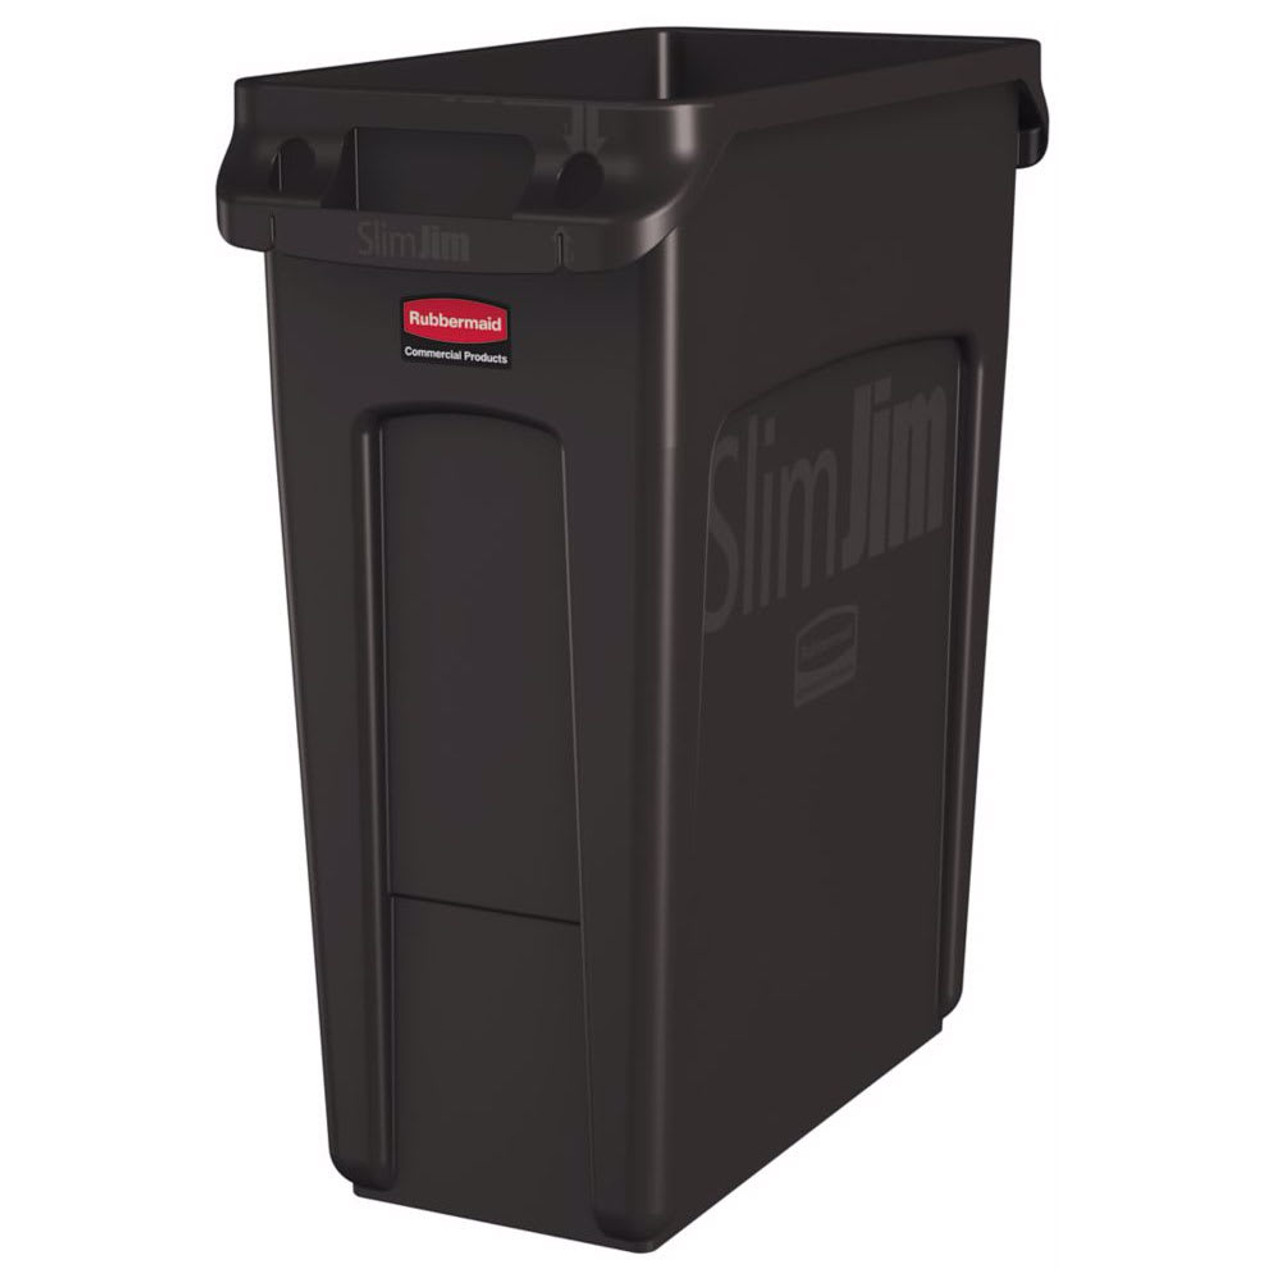 Rubbermaid Slim Jim With Venting Channels 60L - Brown - 1956181